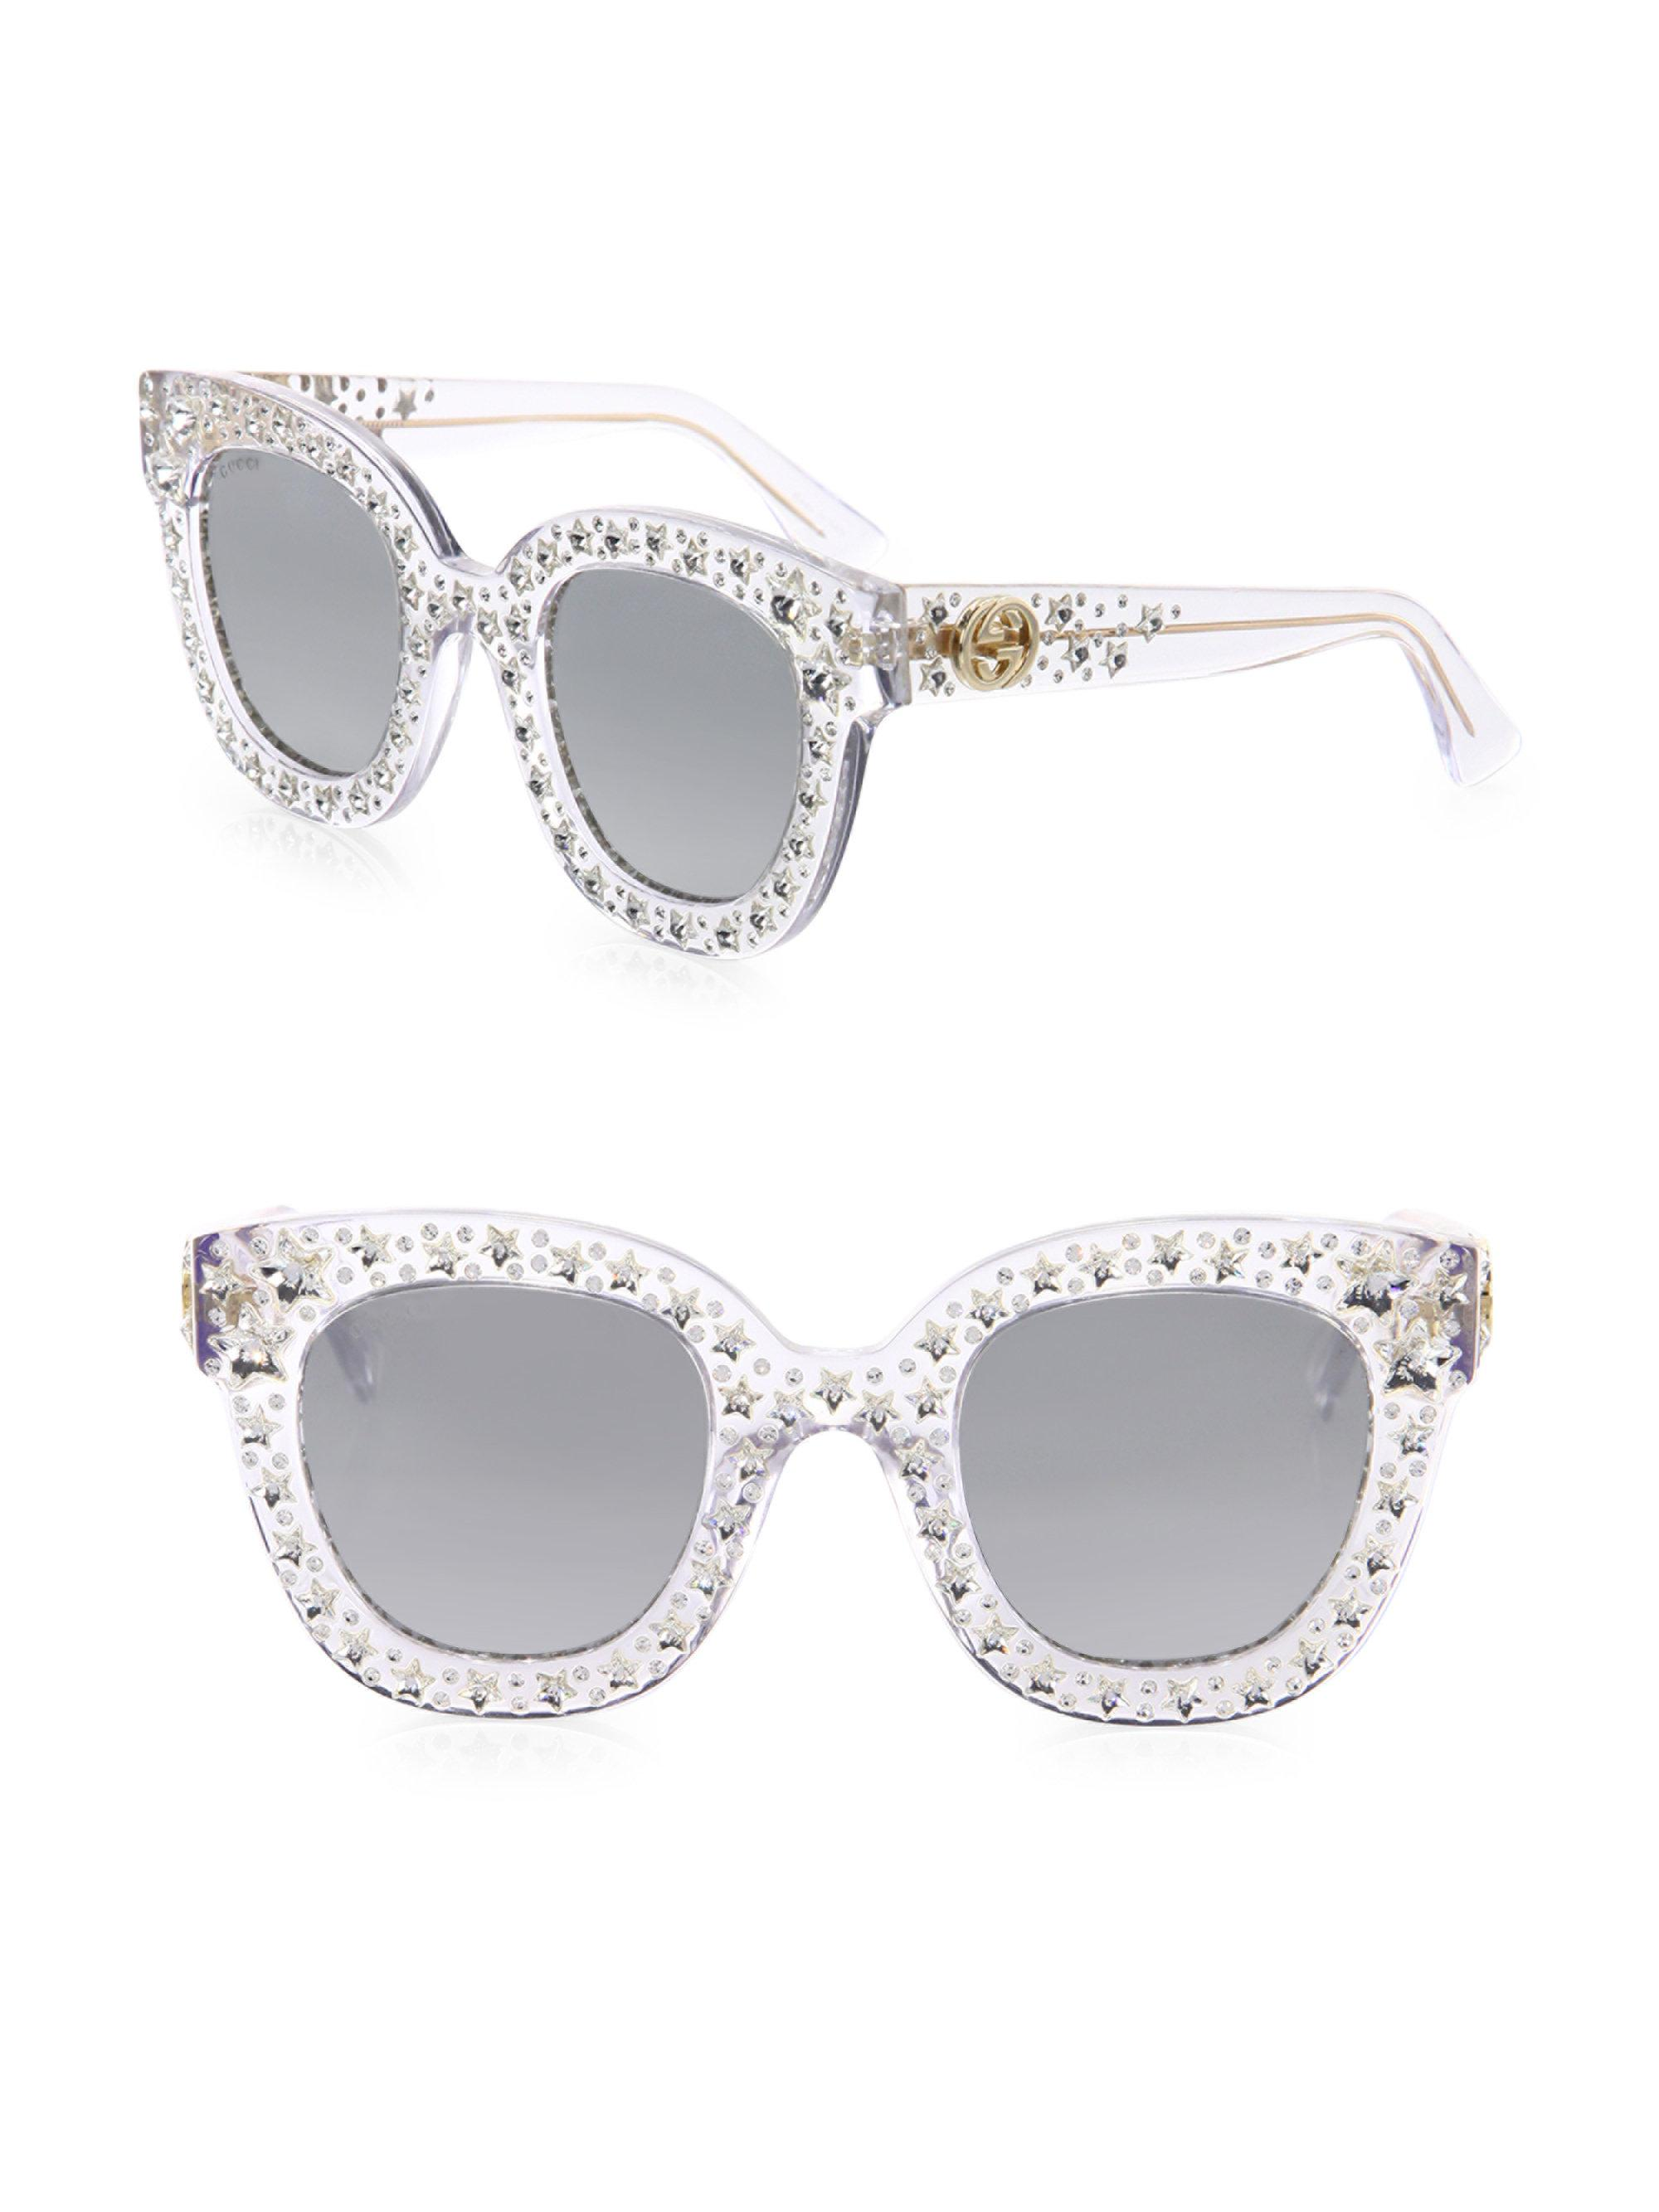 09f6a08ed6a Gucci Oversize Crystal Star Mirrored Square Sunglasses in Metallic ...